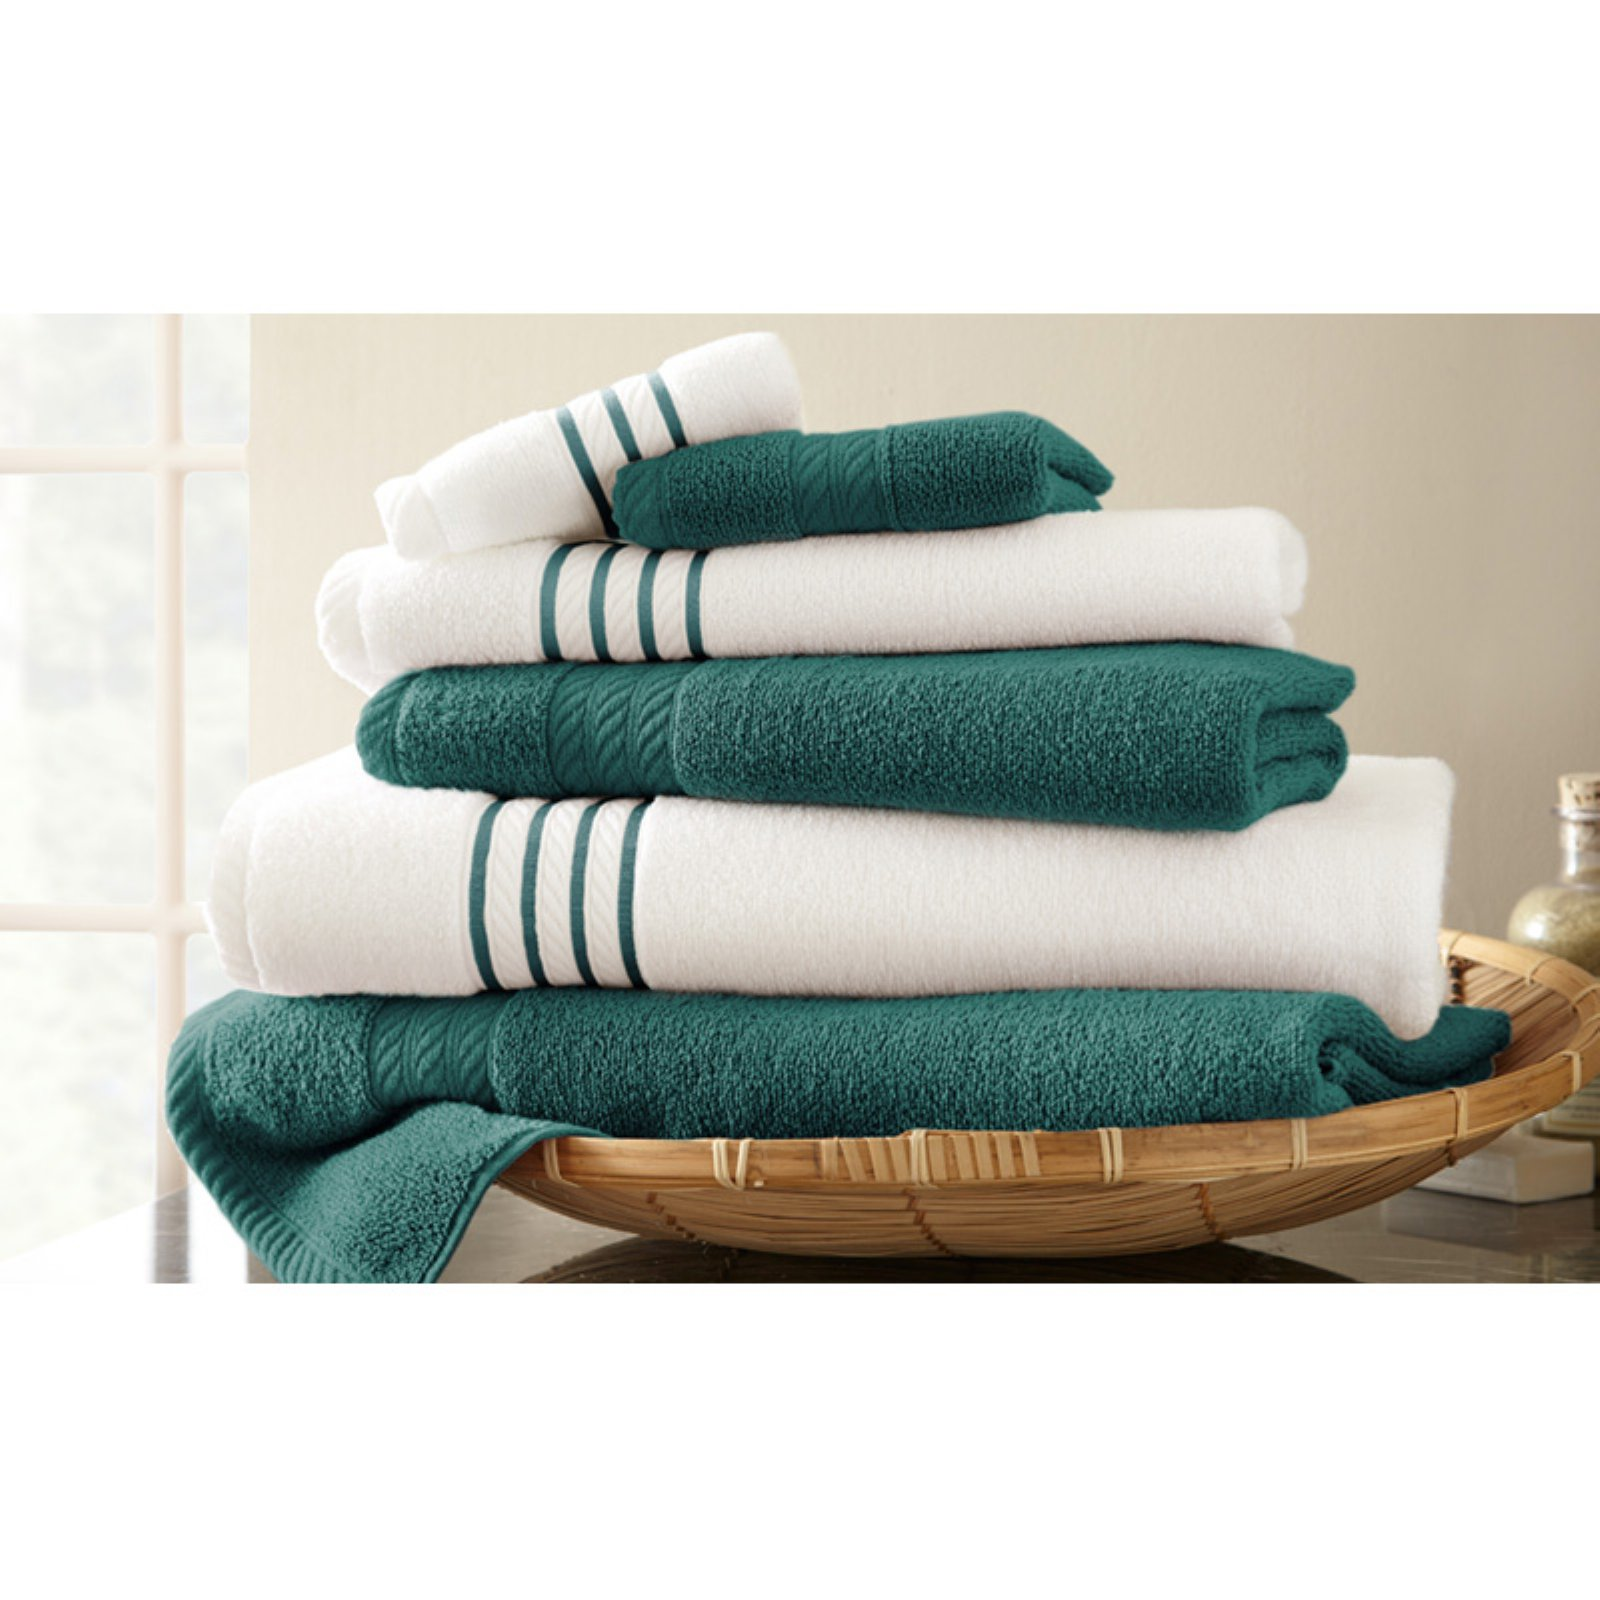 6 Piece Standard Quick Dry Stripe Contrast Towel Set by Amrapur Overseas Inc.